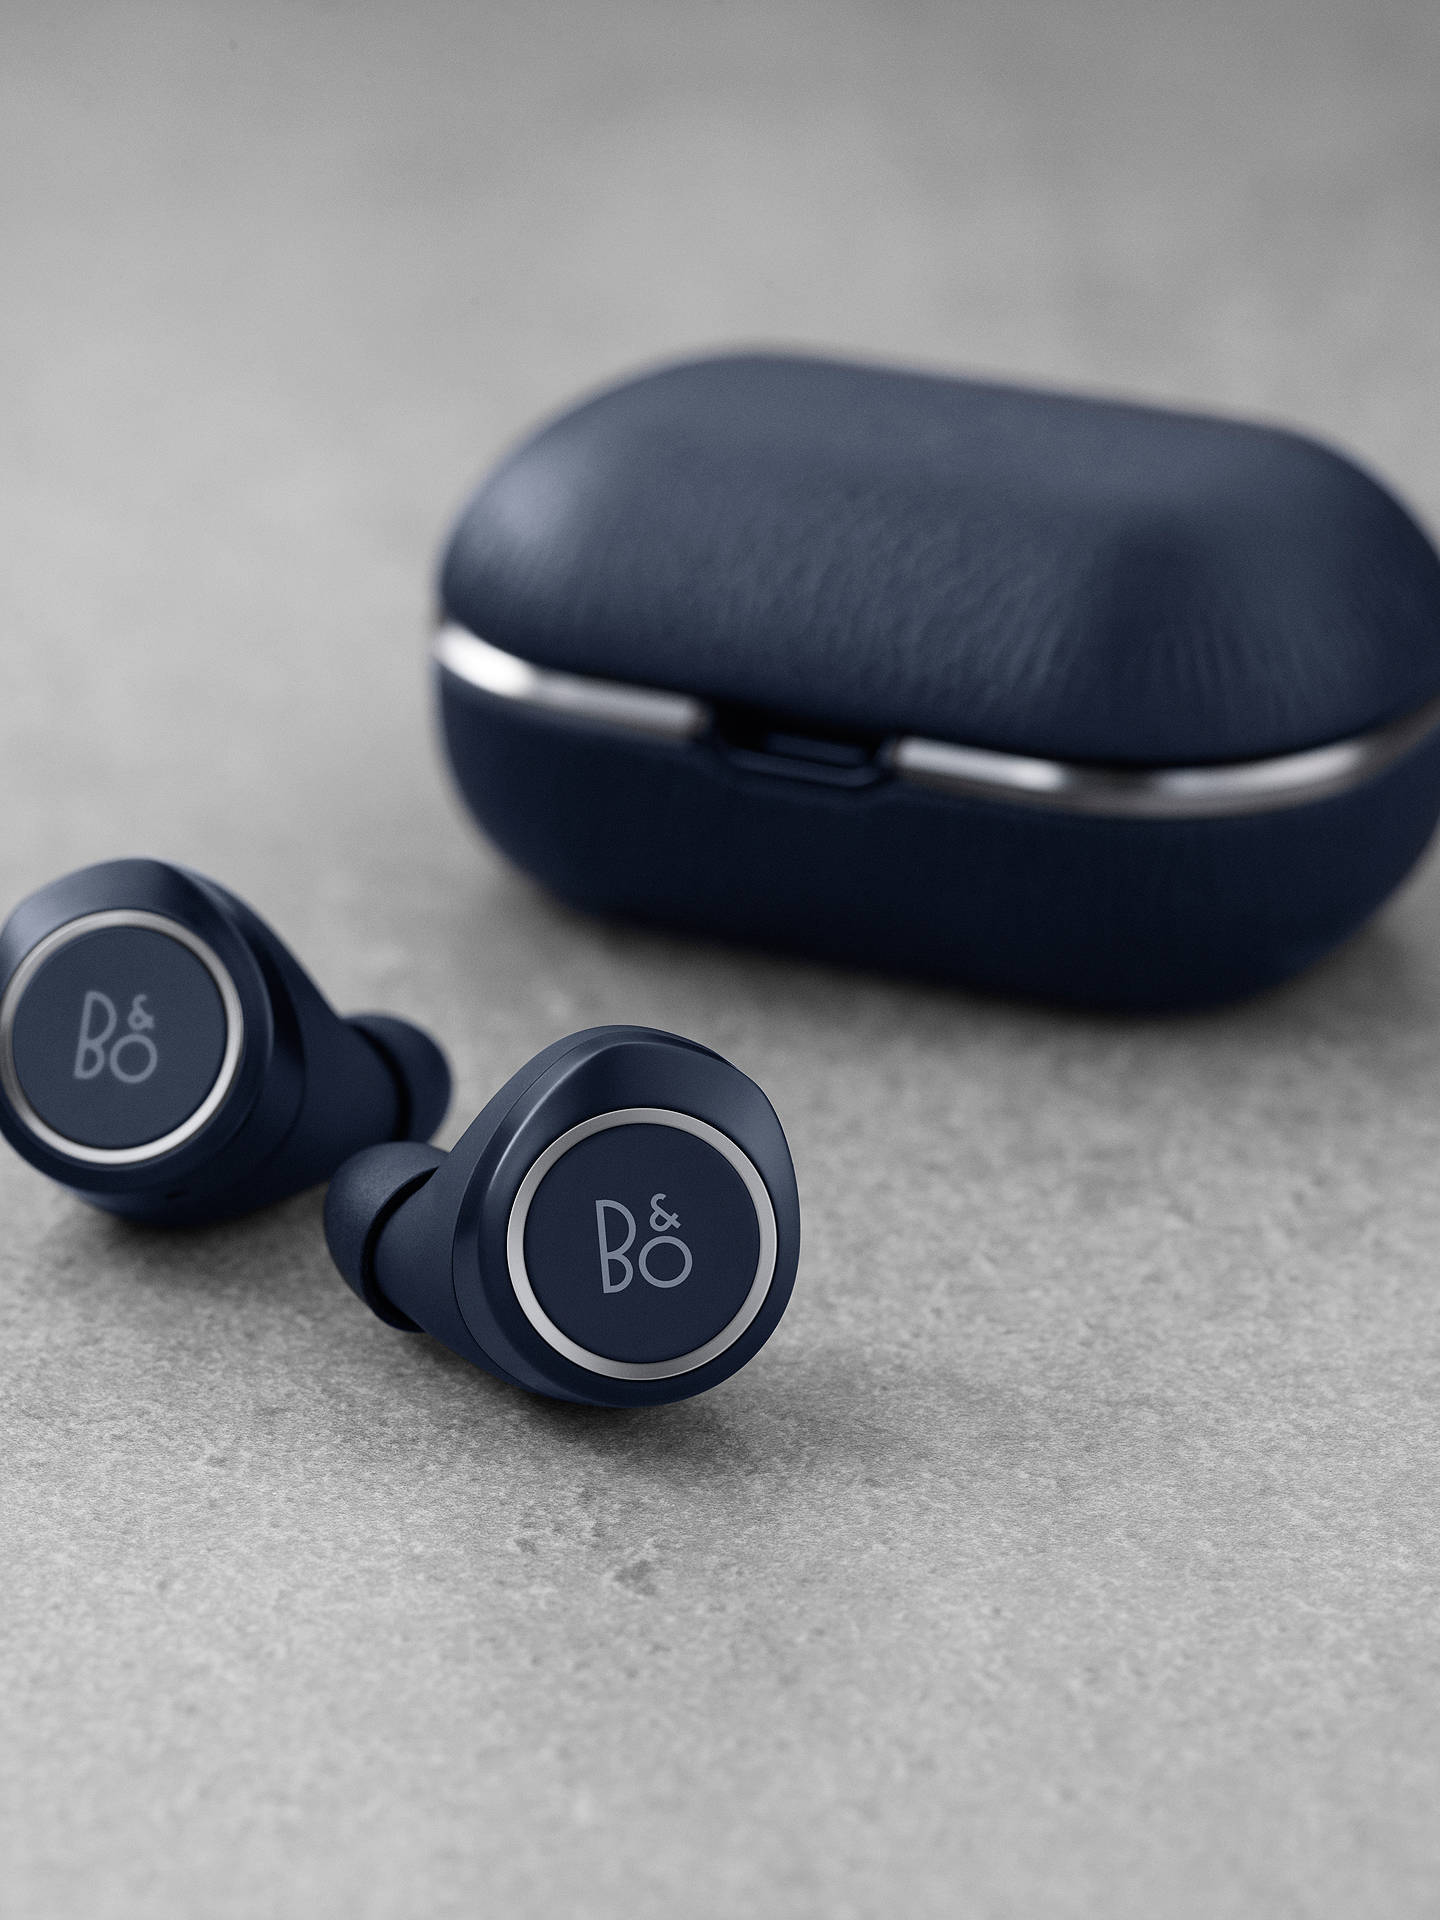 22362ada4614a3 ... Buy Bang & Olufsen Beoplay E8 2.0 True Wireless Bluetooth In-Ear  Headphones with Mic ...